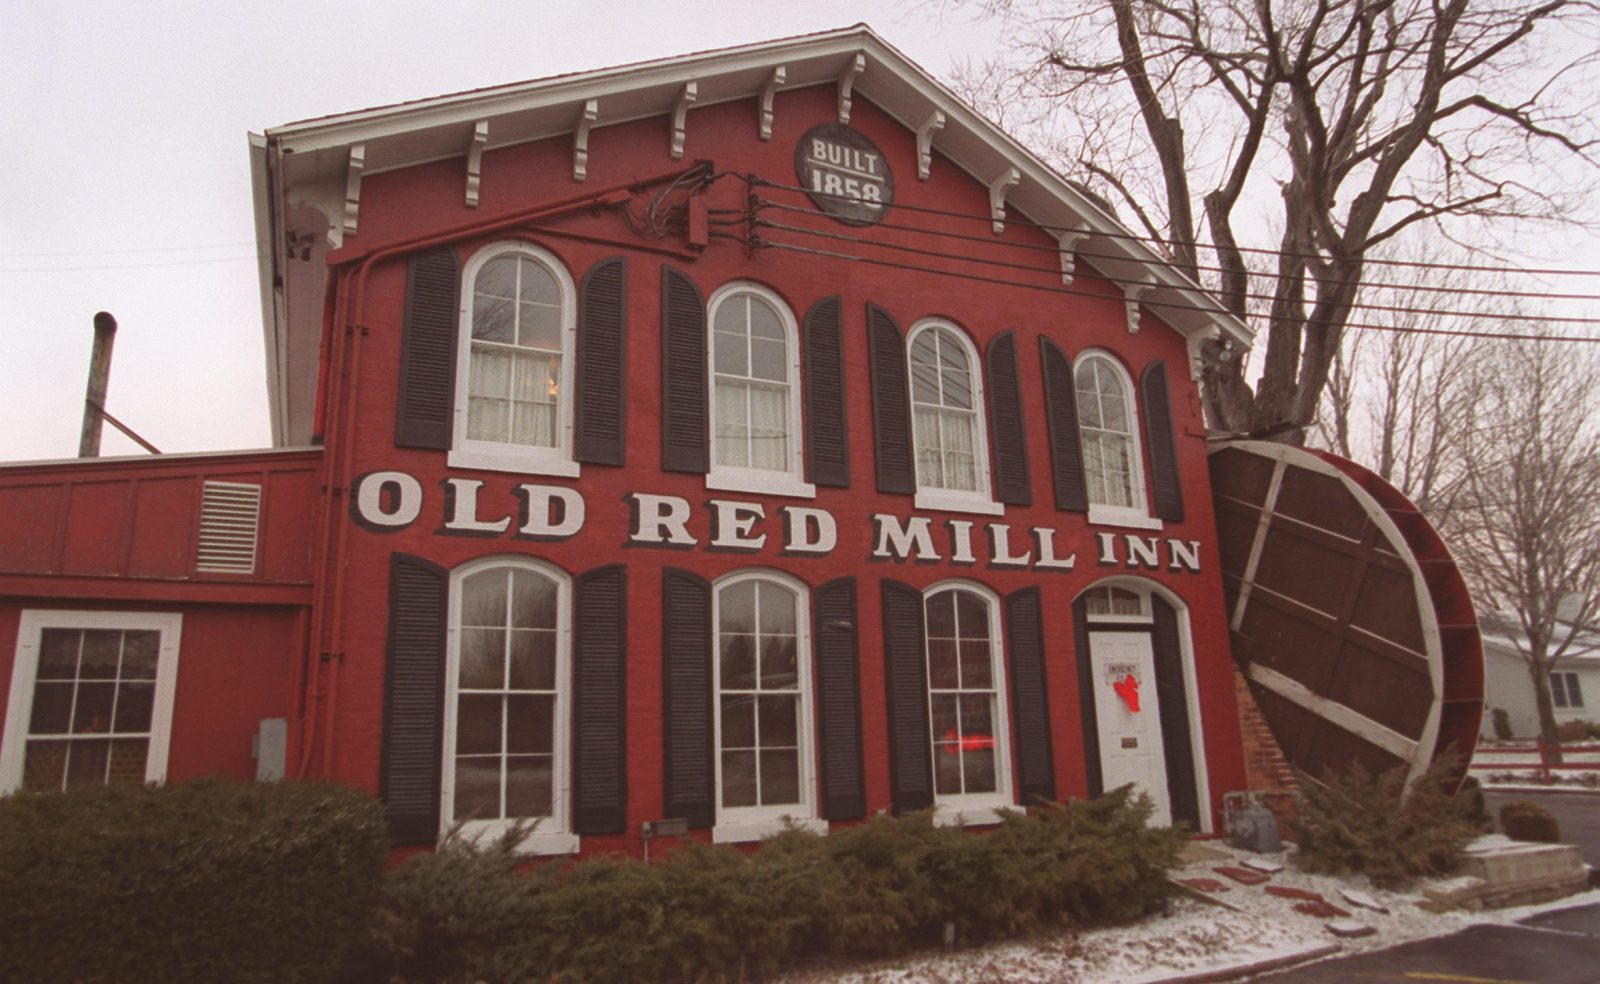 Old Red Mill Inn on Main Street was another closing that sent ripple effects through local eaters. (Robert Kirkham/Buffalo News file photo)